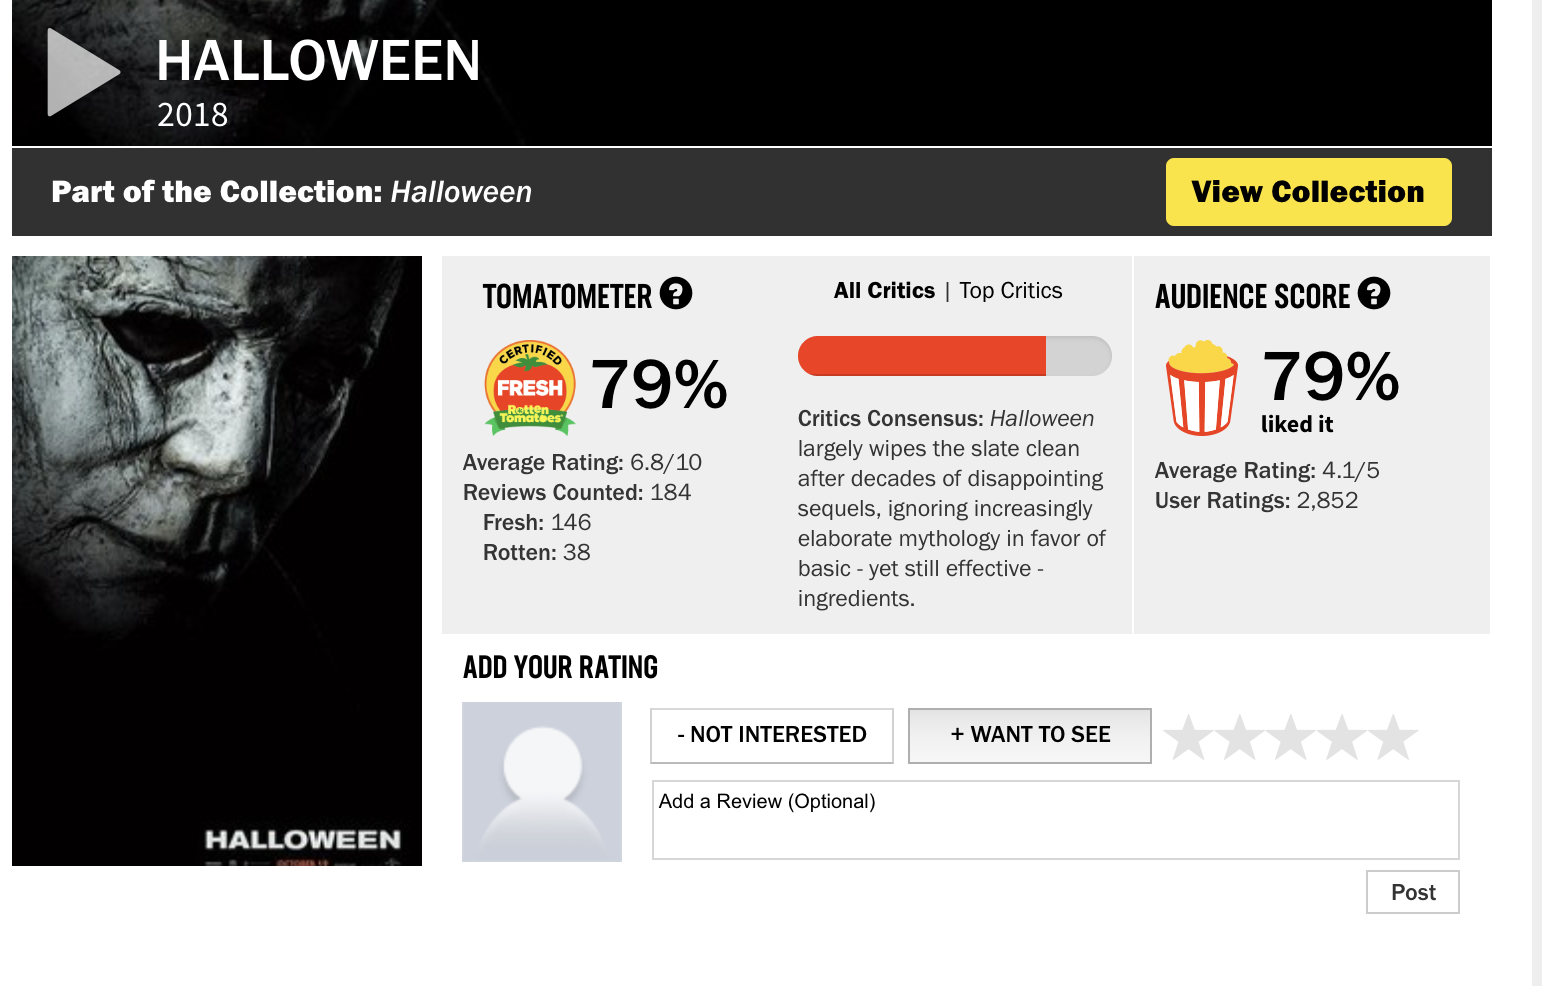 This makes it the second franchise favorite of the critics (many of them, usually not fanatics of terror). The first one has score of 93% , while the others have scores that range from 50% to a very low 12%.